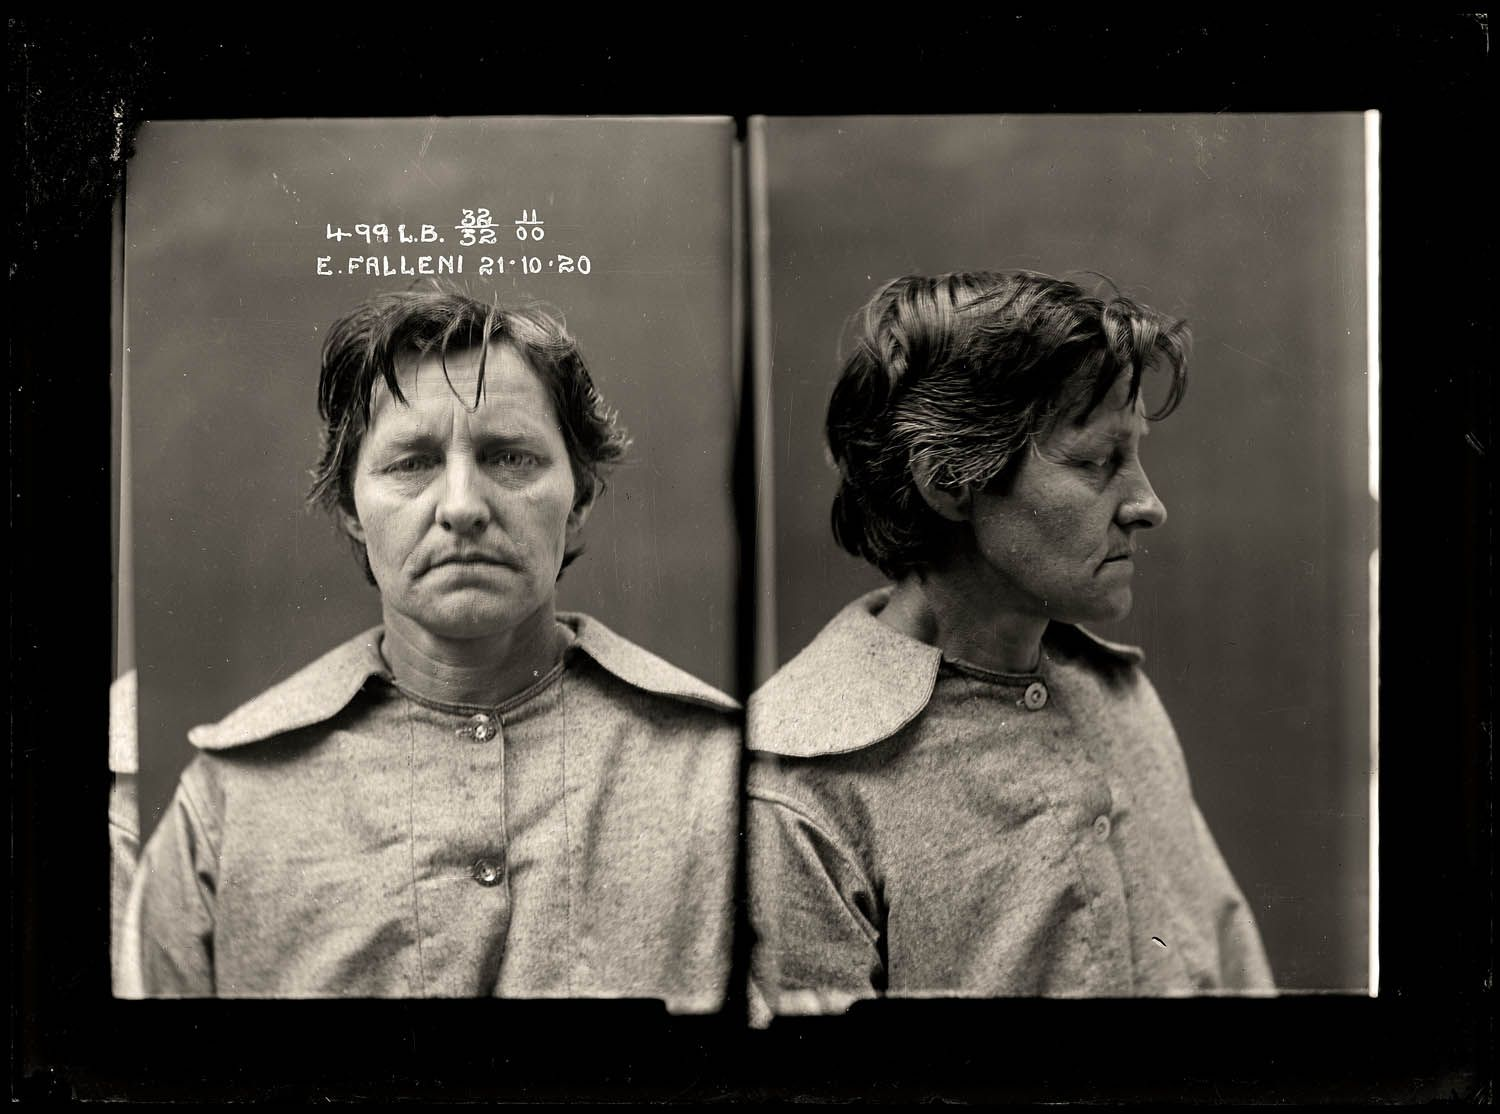 The vintage mugshots of shoplifters bank robbers and murderers from - Eugenia Falleni Was An Australian Woman Who In 1920 Was Charged With The Murder Of Her Wife She Lived For 22 Years As Harry Crawford Convincing 2 Wives